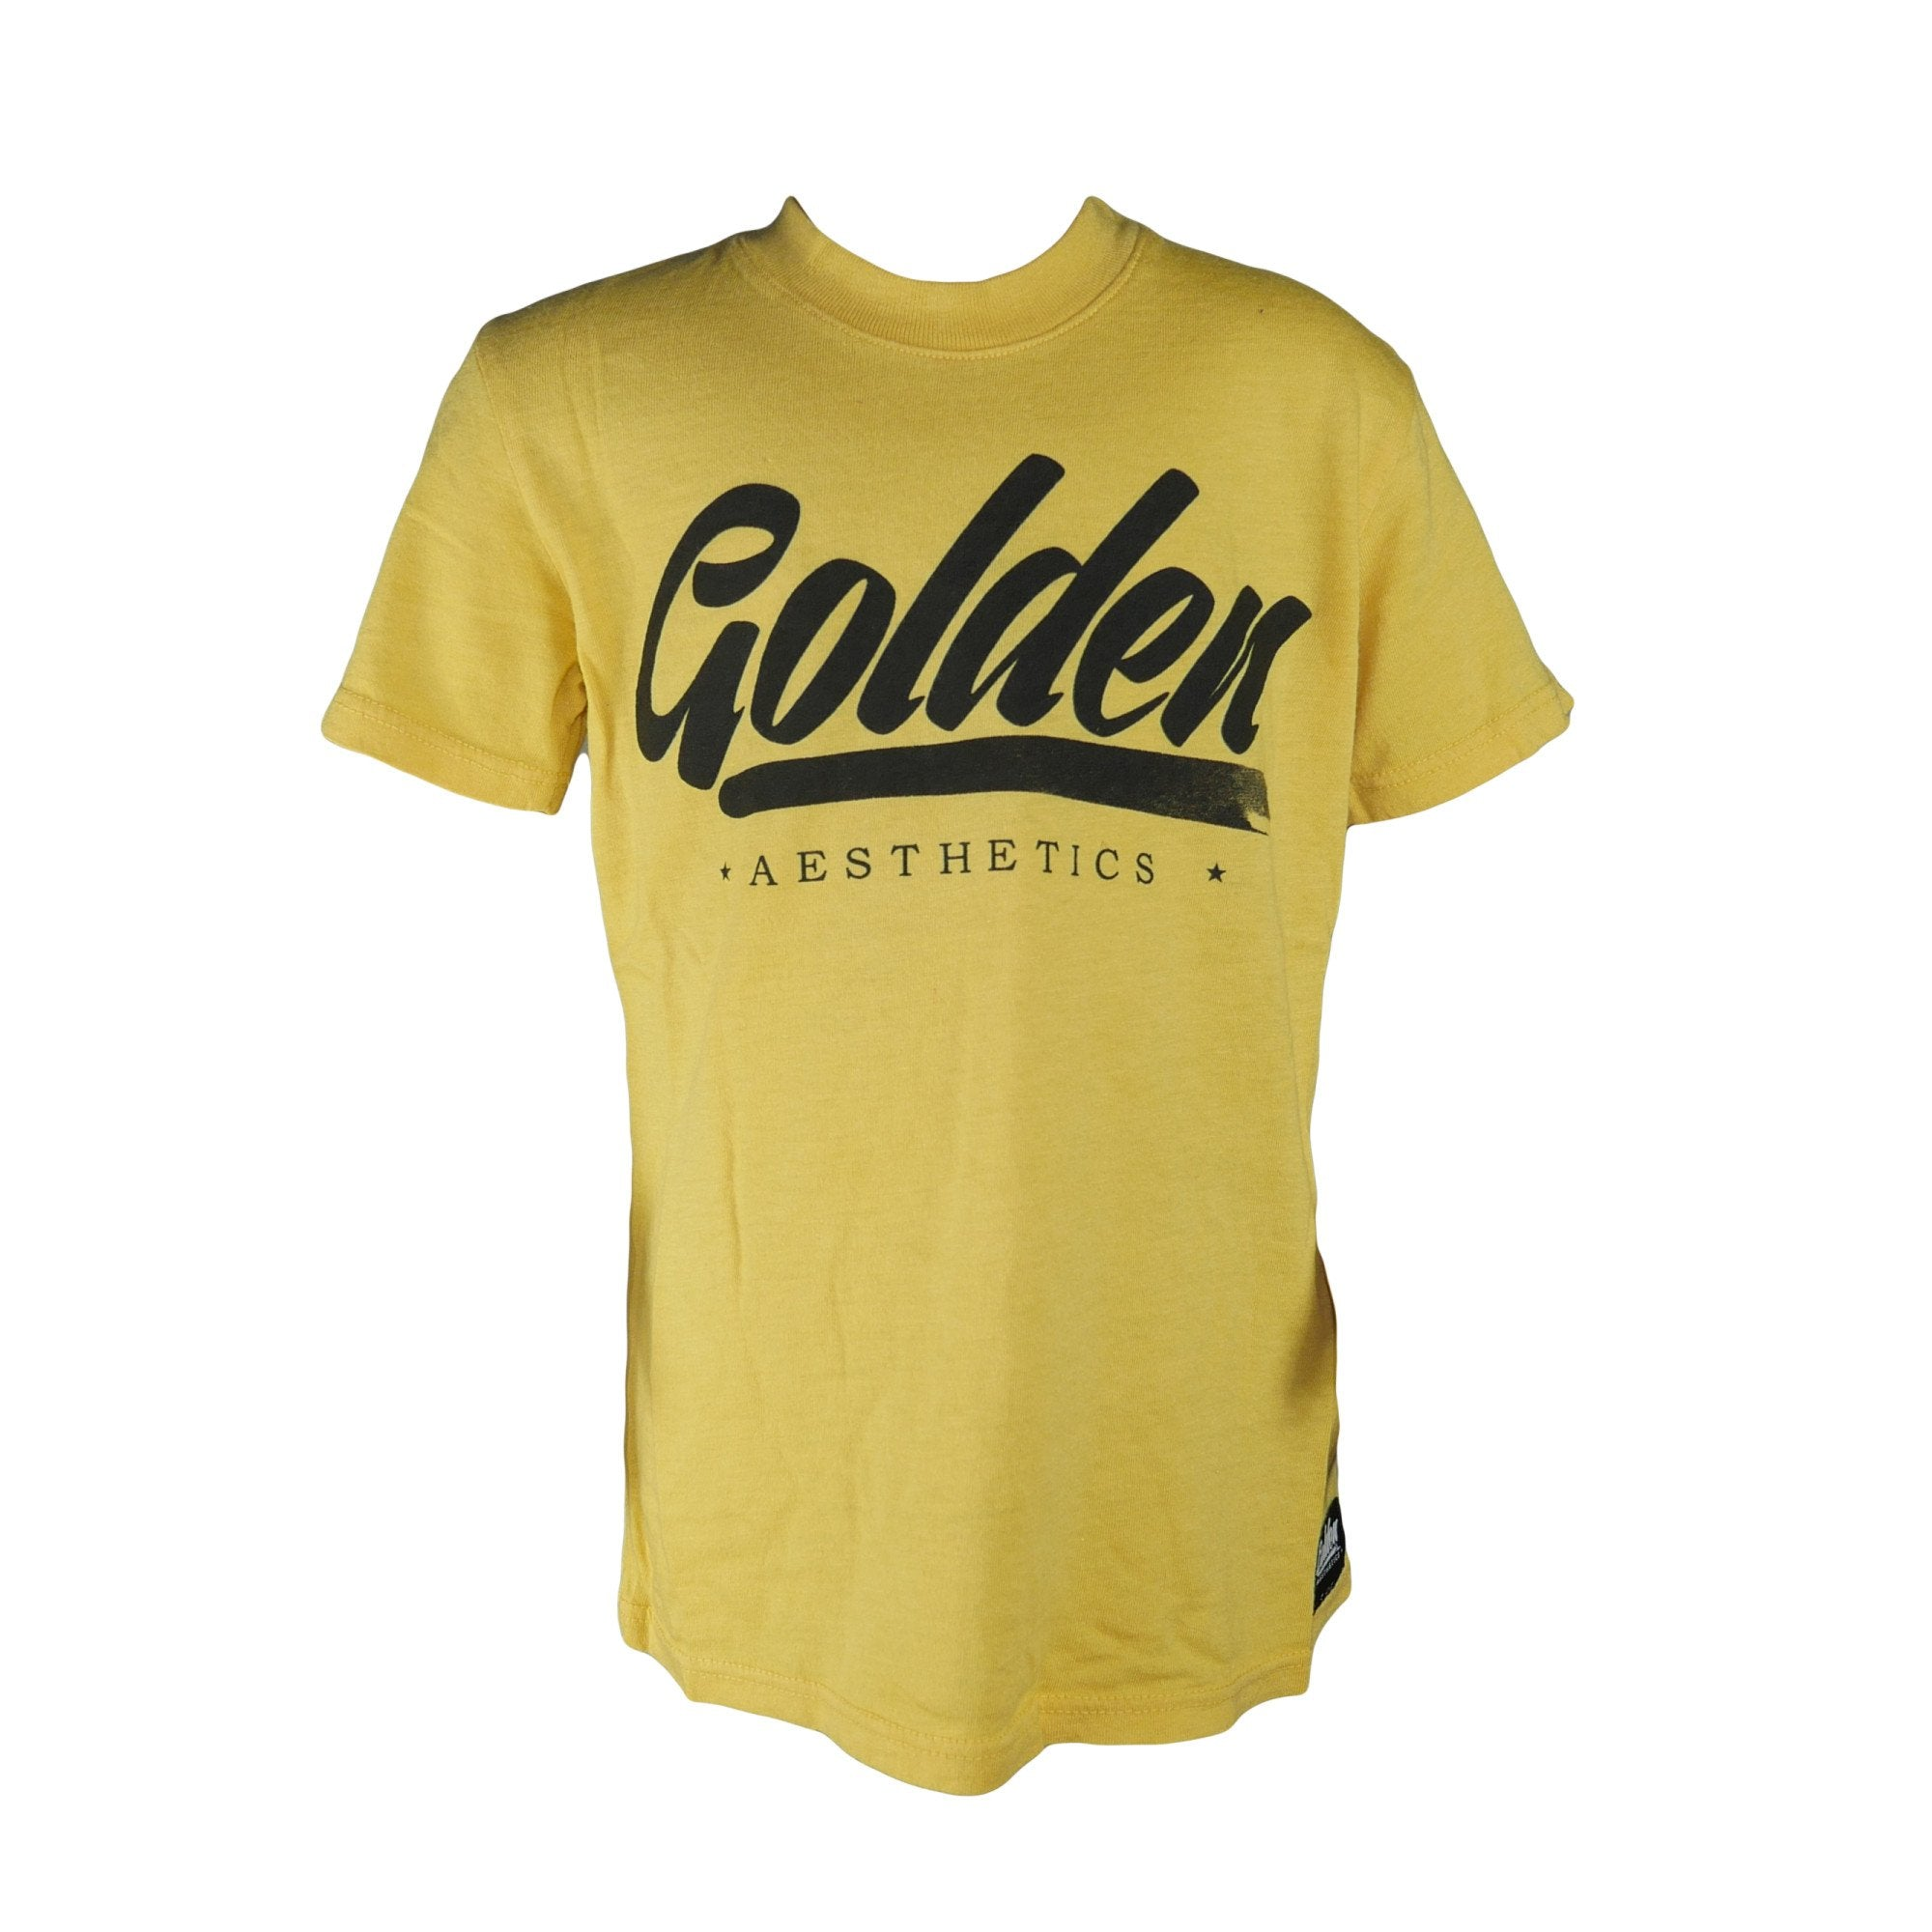 Kid's Collection T-Shirt - Yellow - Golden Aesthetics